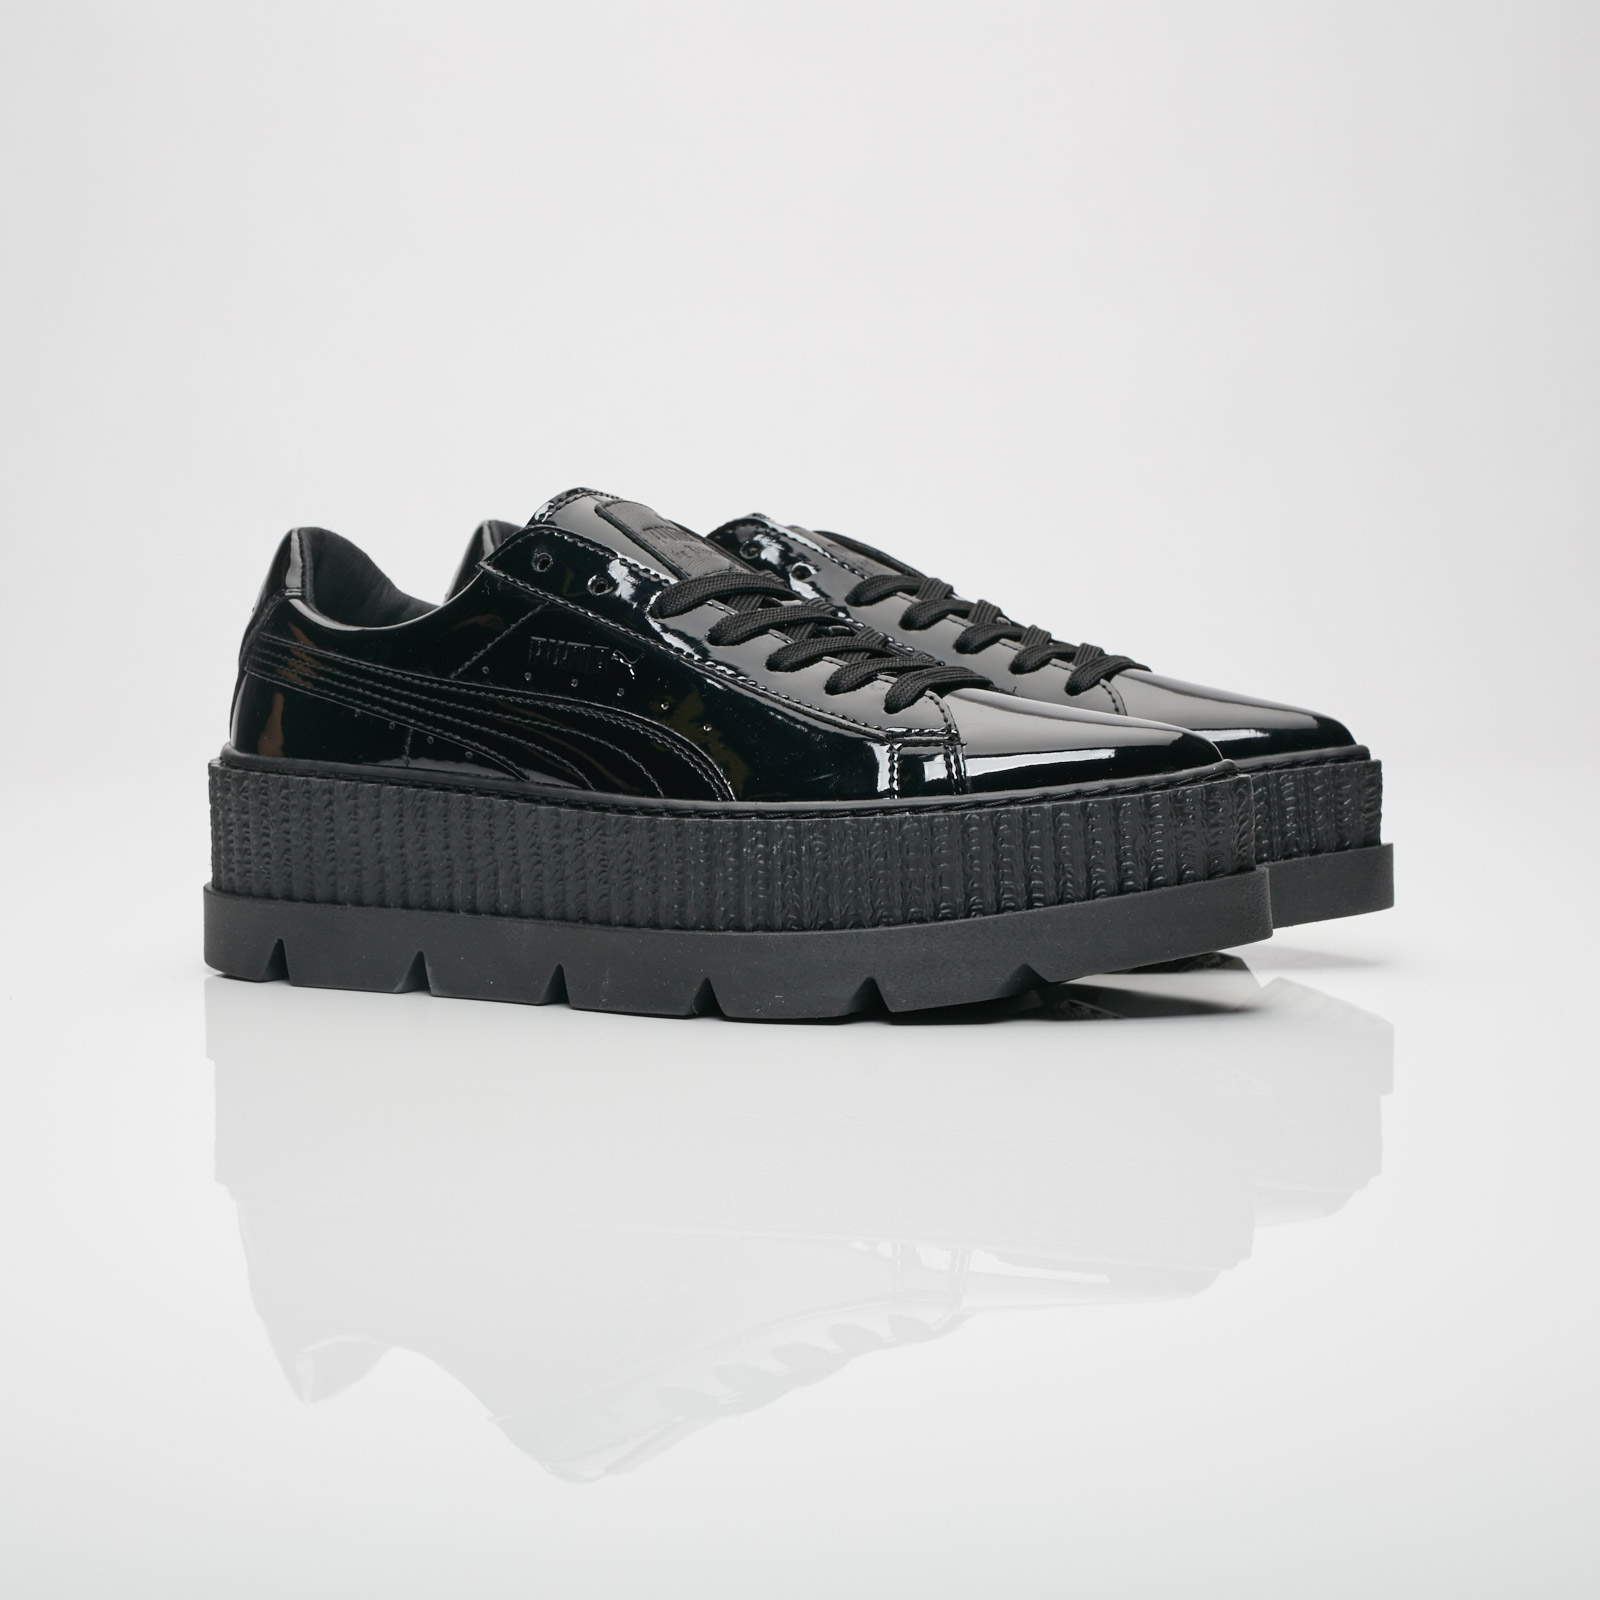 695babd56c4a9c Puma Pointy Creeper Patent Wns - 366270-01 - Sneakersnstuff ...